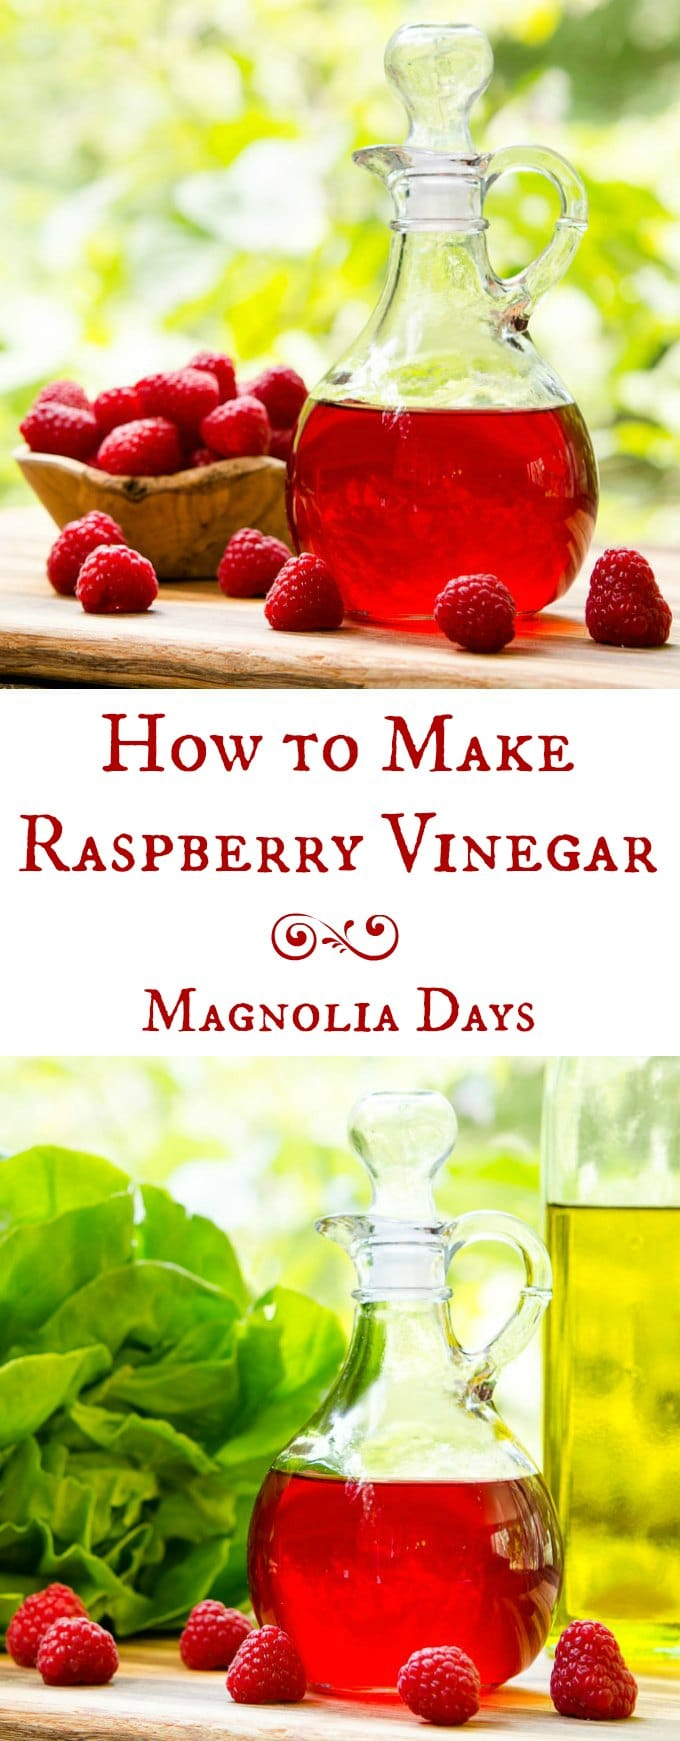 How to make homemade raspberry vinegar by infusing fresh raspberries into vinegar. It's so easy to do. The vinegar has bright berry flavor and a hint of lemon. It's great for salads, dressings, and to give as gifts.